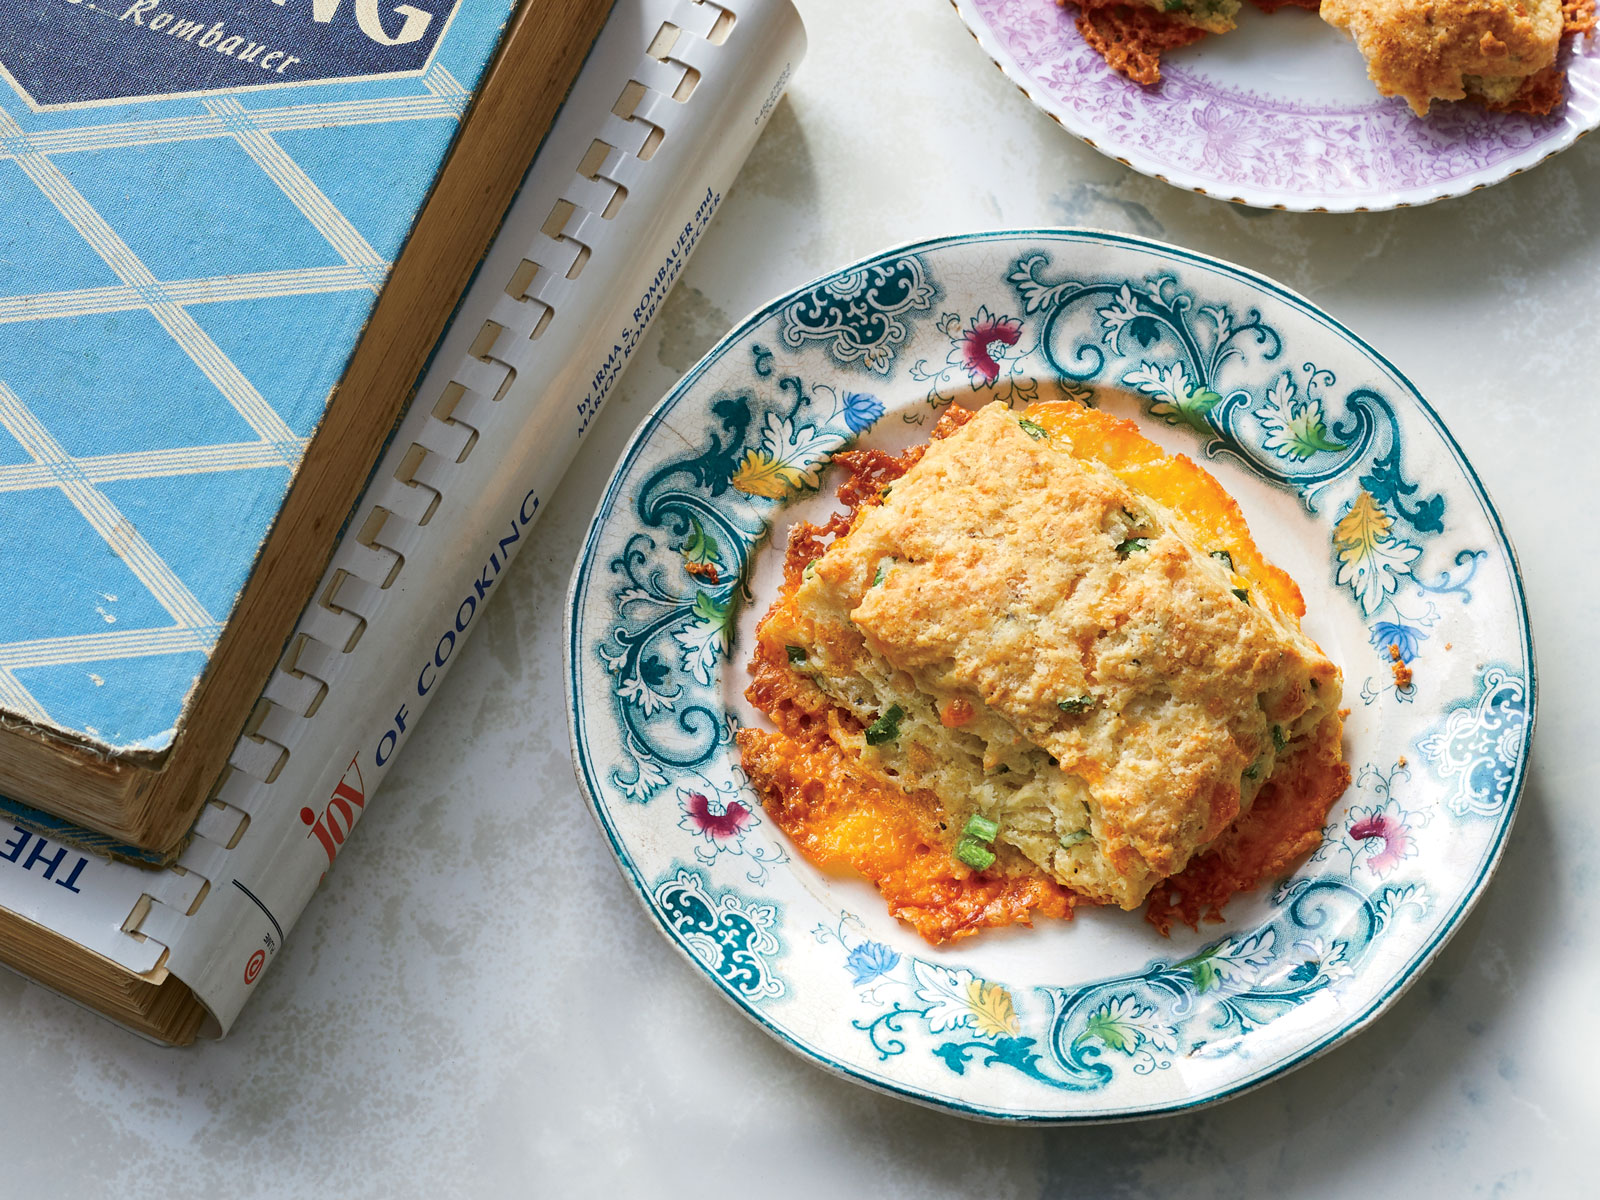 Cheddar-Scallion Biscuits